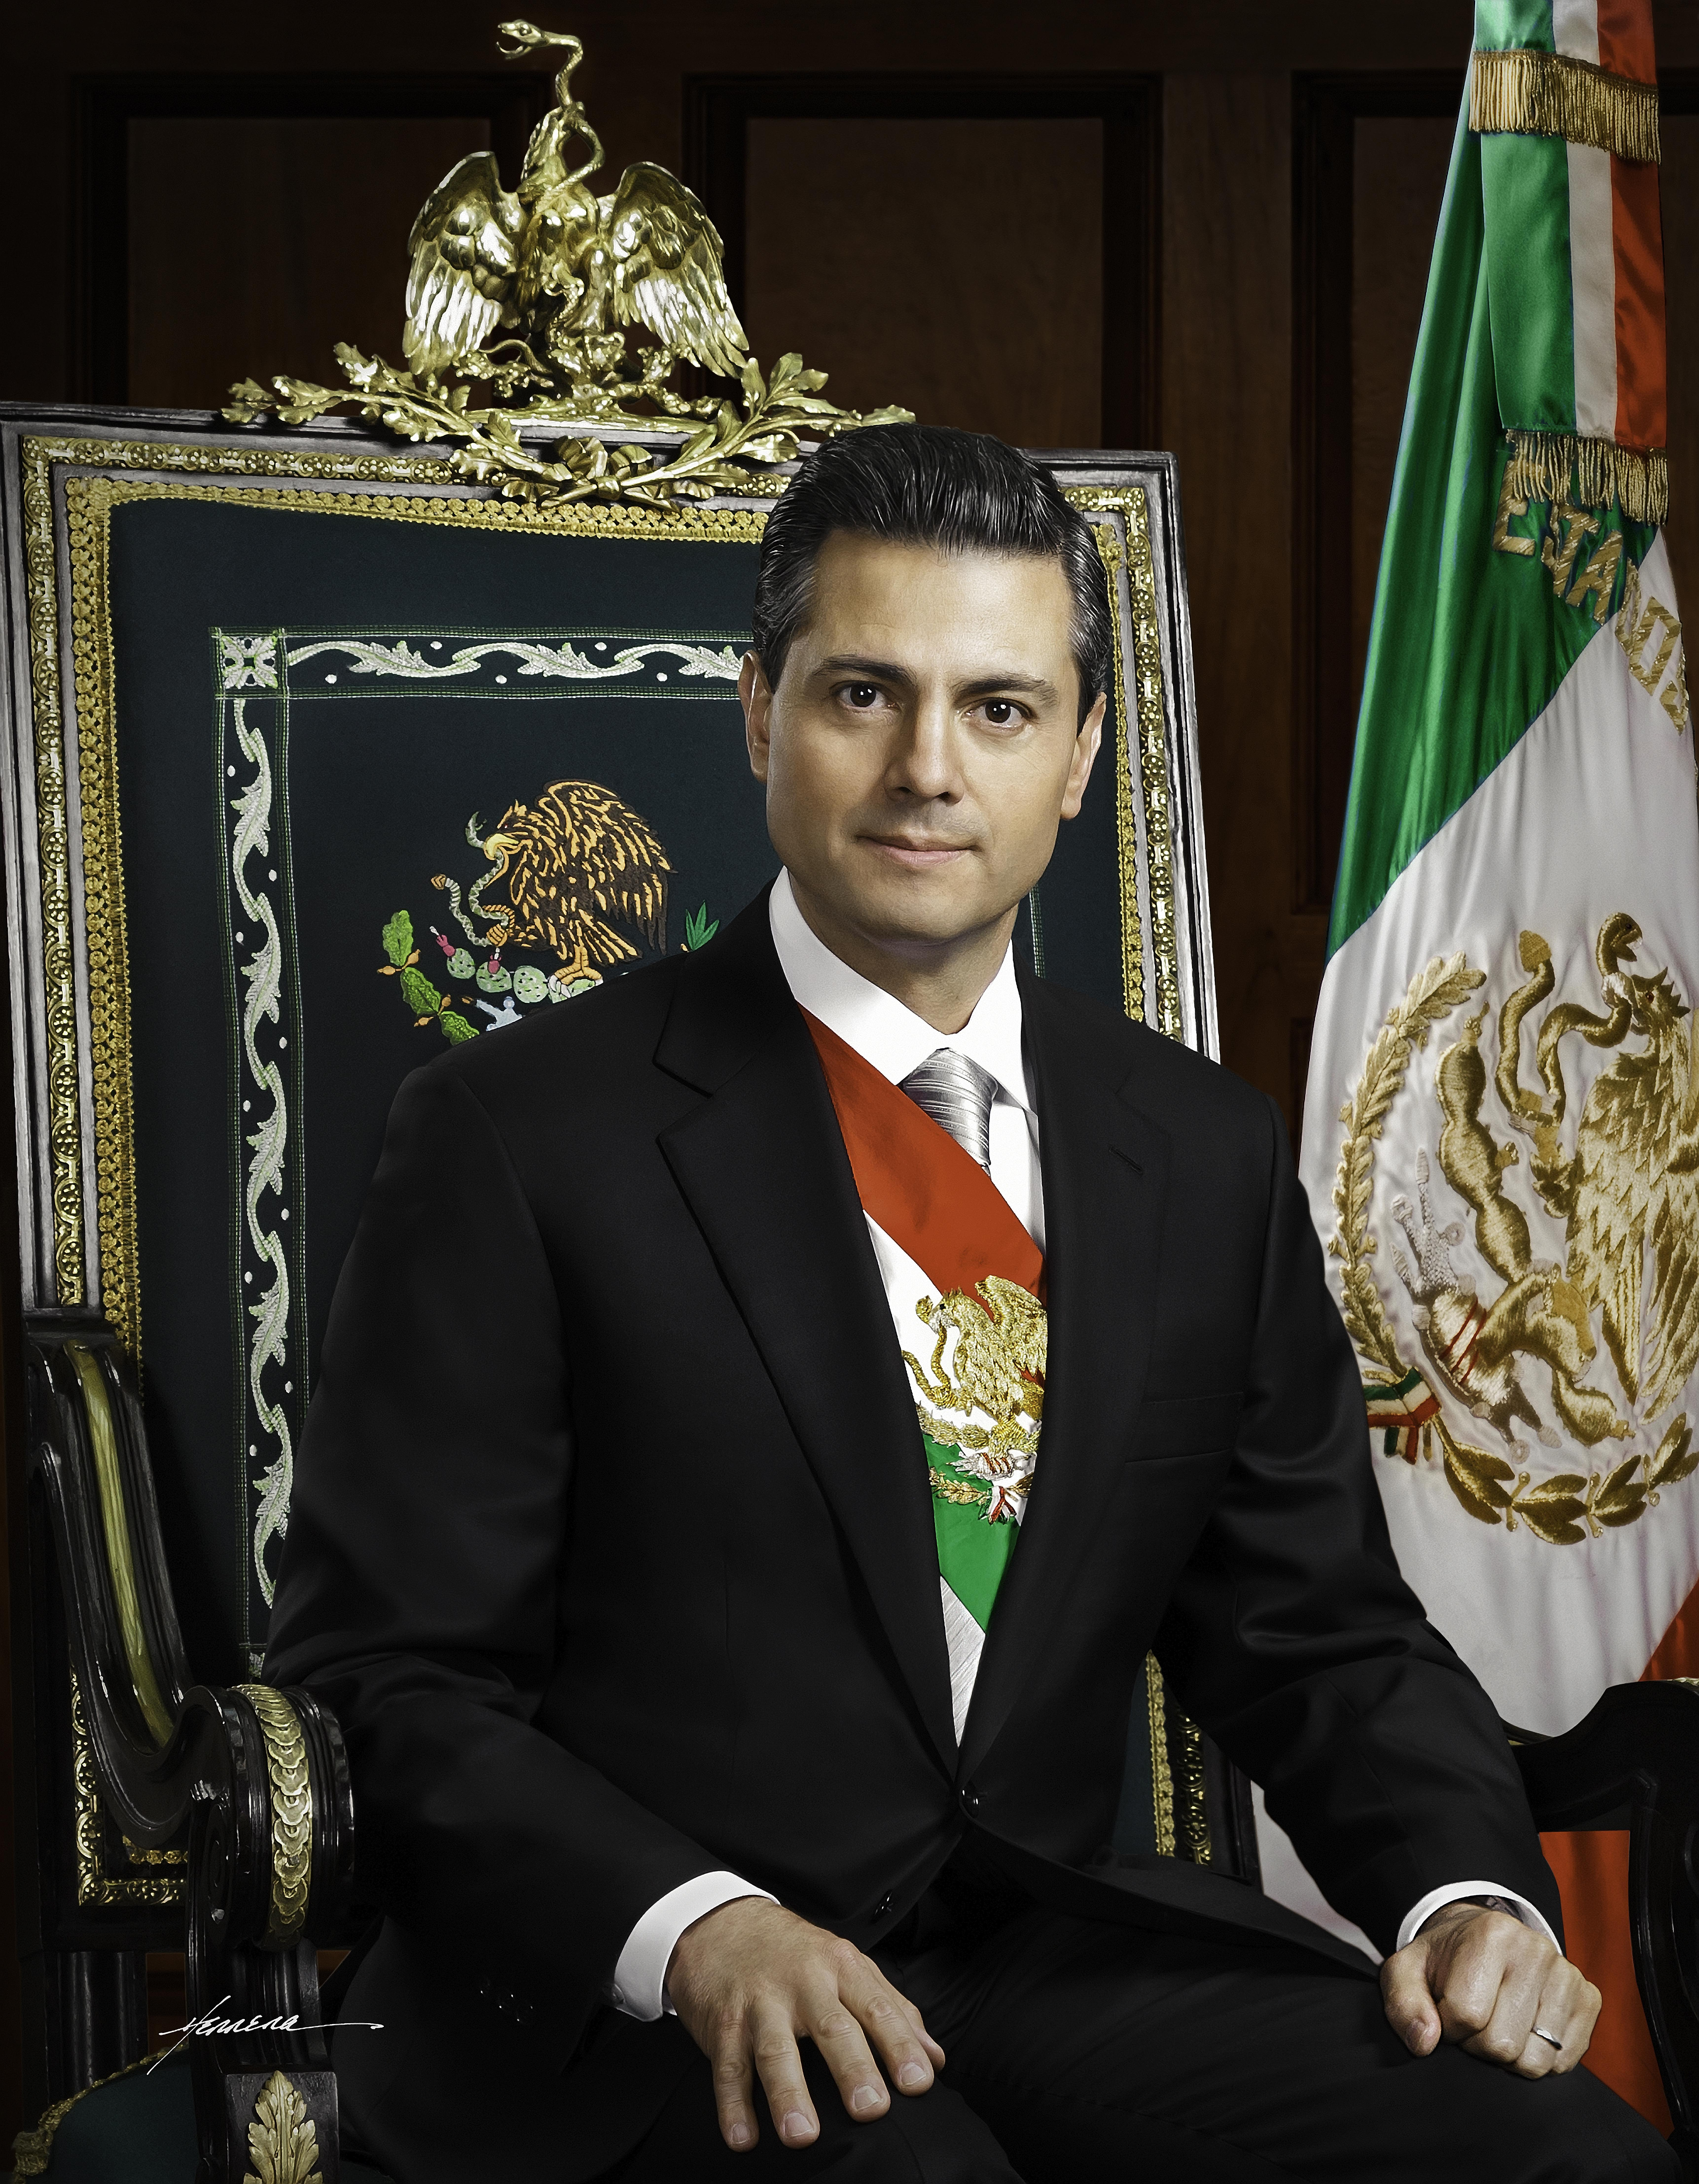 By PresidenciaMX 2012-2018 - Own work, CC BY-SA 3.0, https://commons.wikimedia.org/w/index.php?curid=26225206